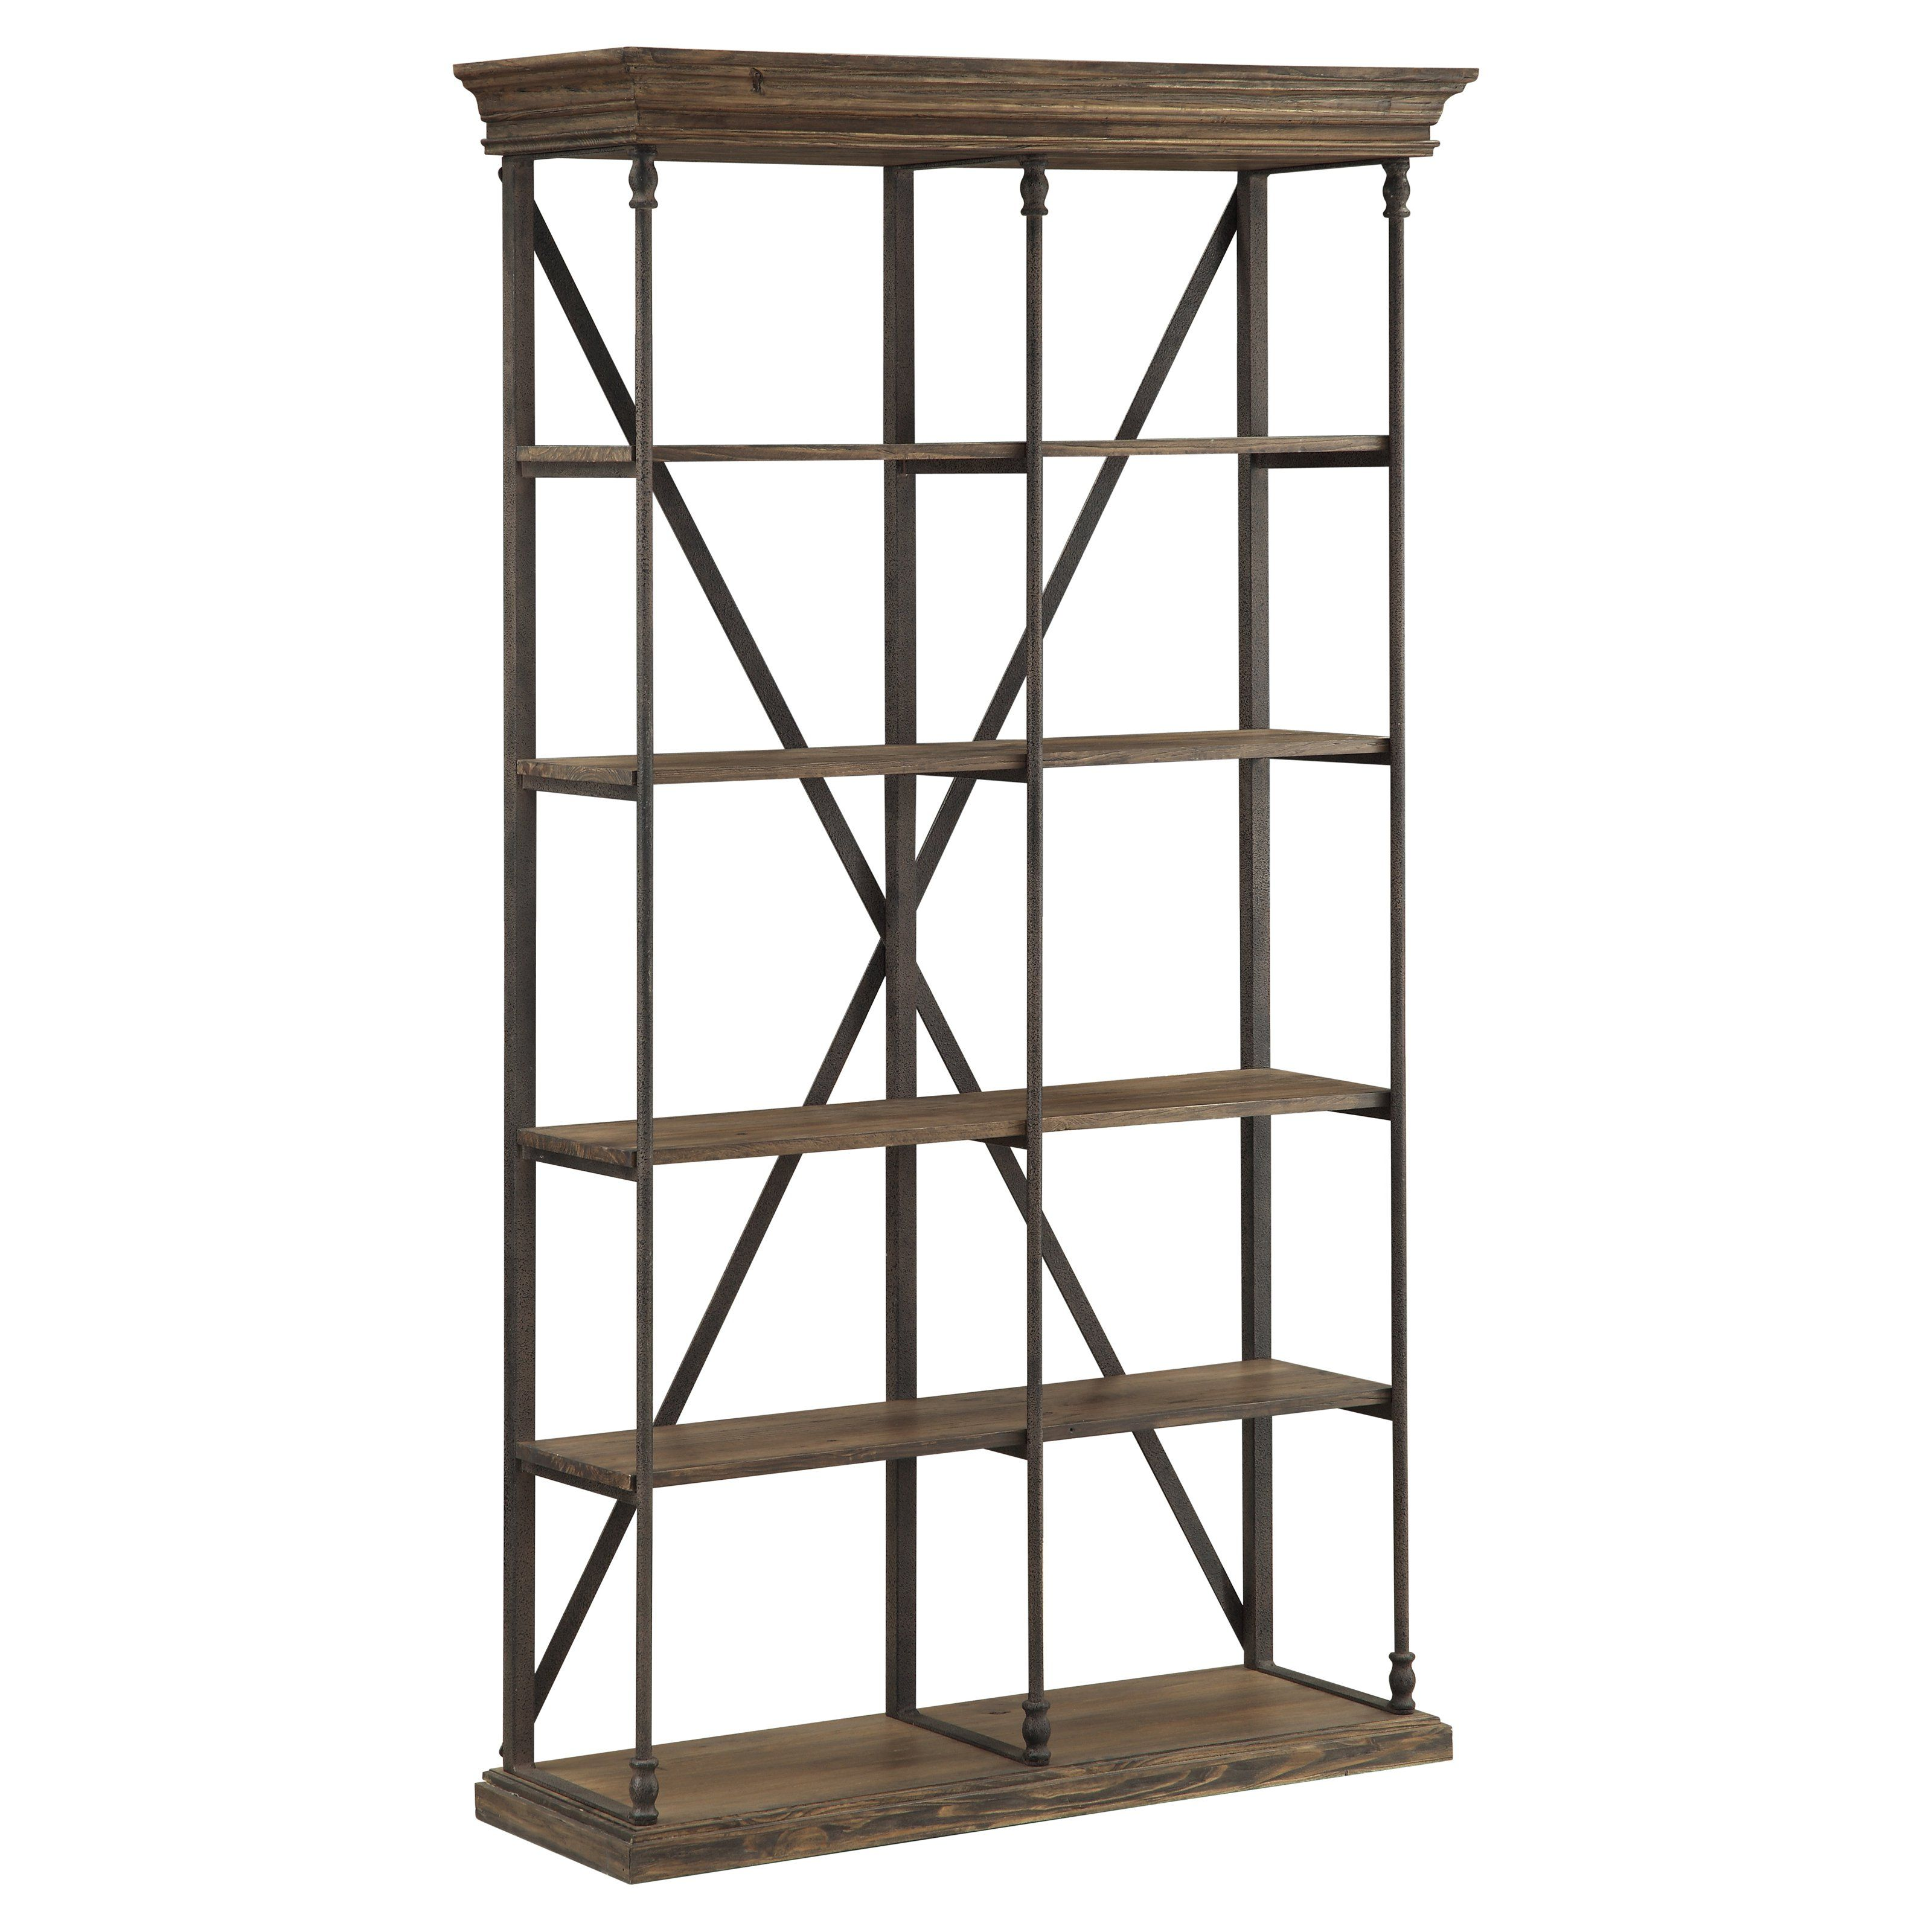 Coast to coast industrial xback bookcase products